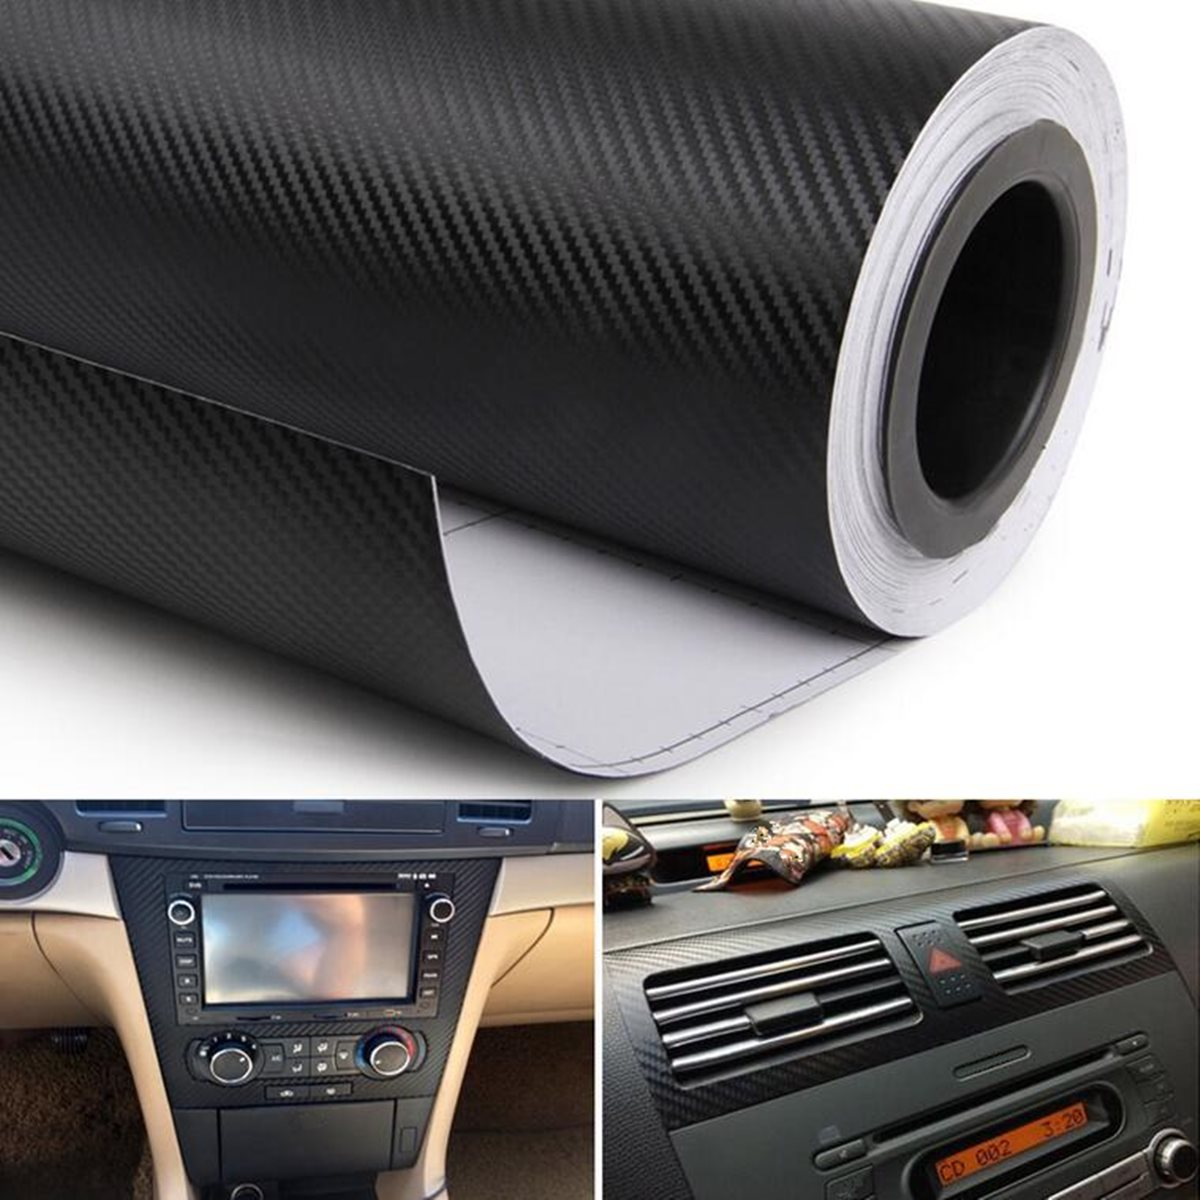 38cm x 100cm Car Styling Sticker Glossy Black Carbon Fiber Vinyl Wrap Film DIY Car Decorative For Motorcycle Motor Car Truck 50 60hz automatic voltage regulator for kutai brushless generator avr ea16 free shipping